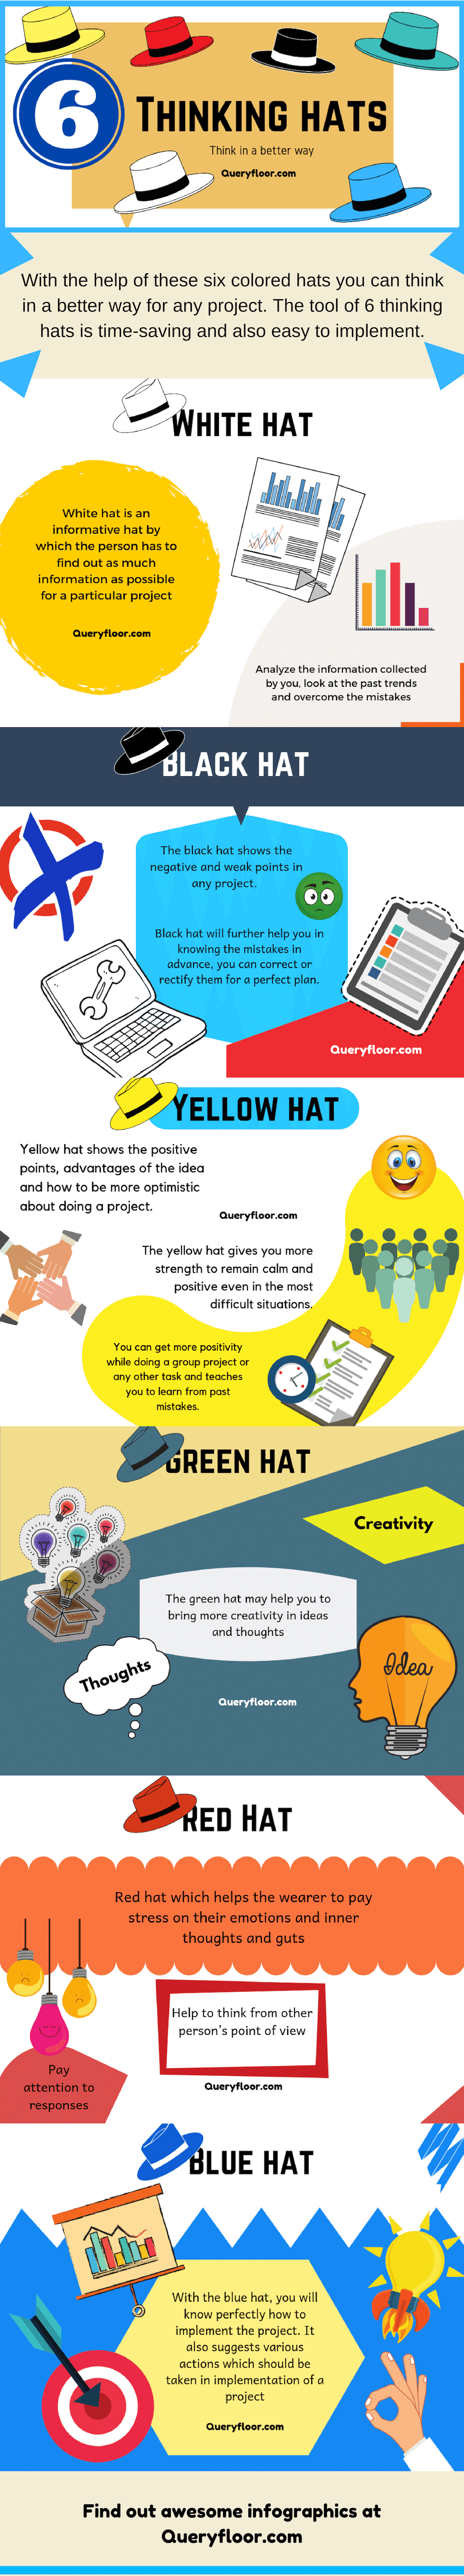 6 thinking hats.png